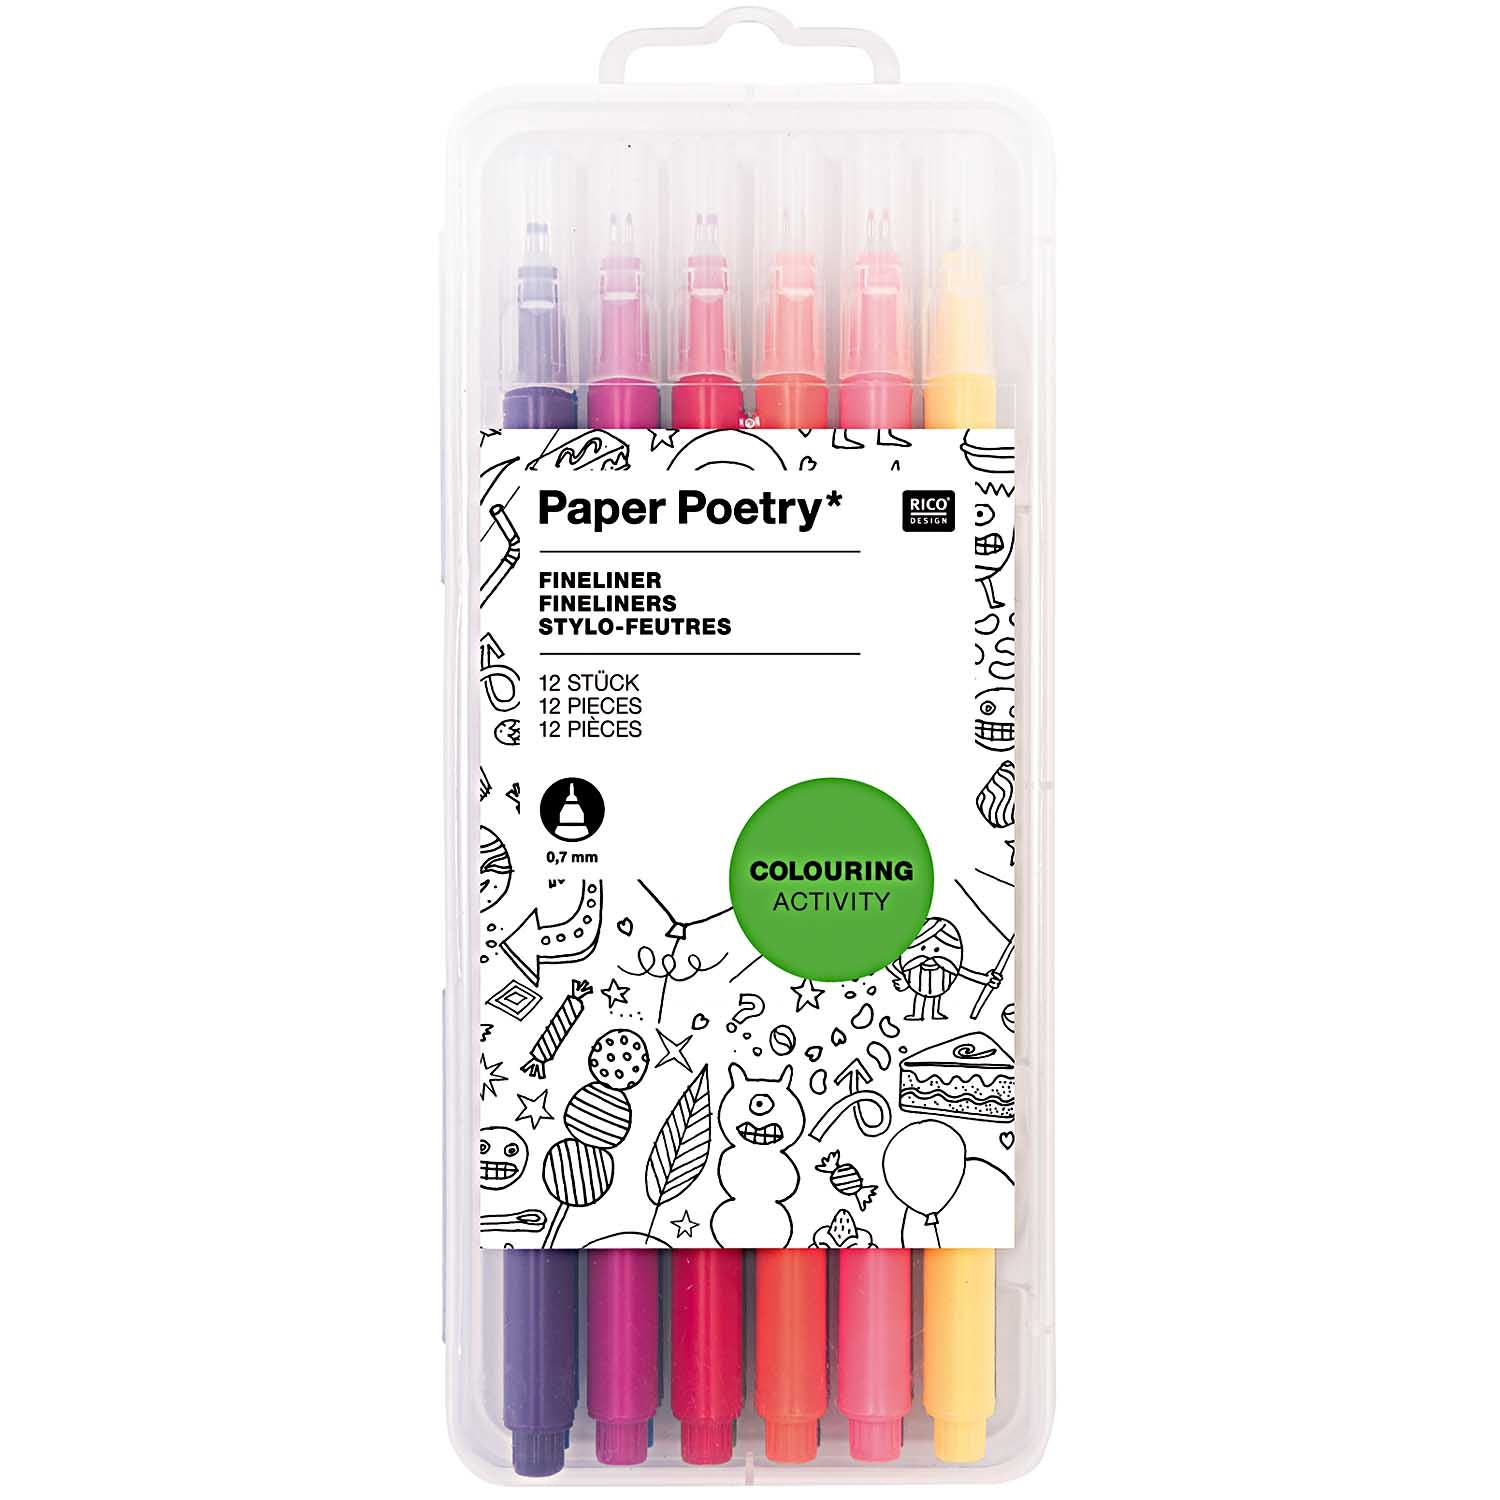 Paper Poetry - Fineliner Set of 12